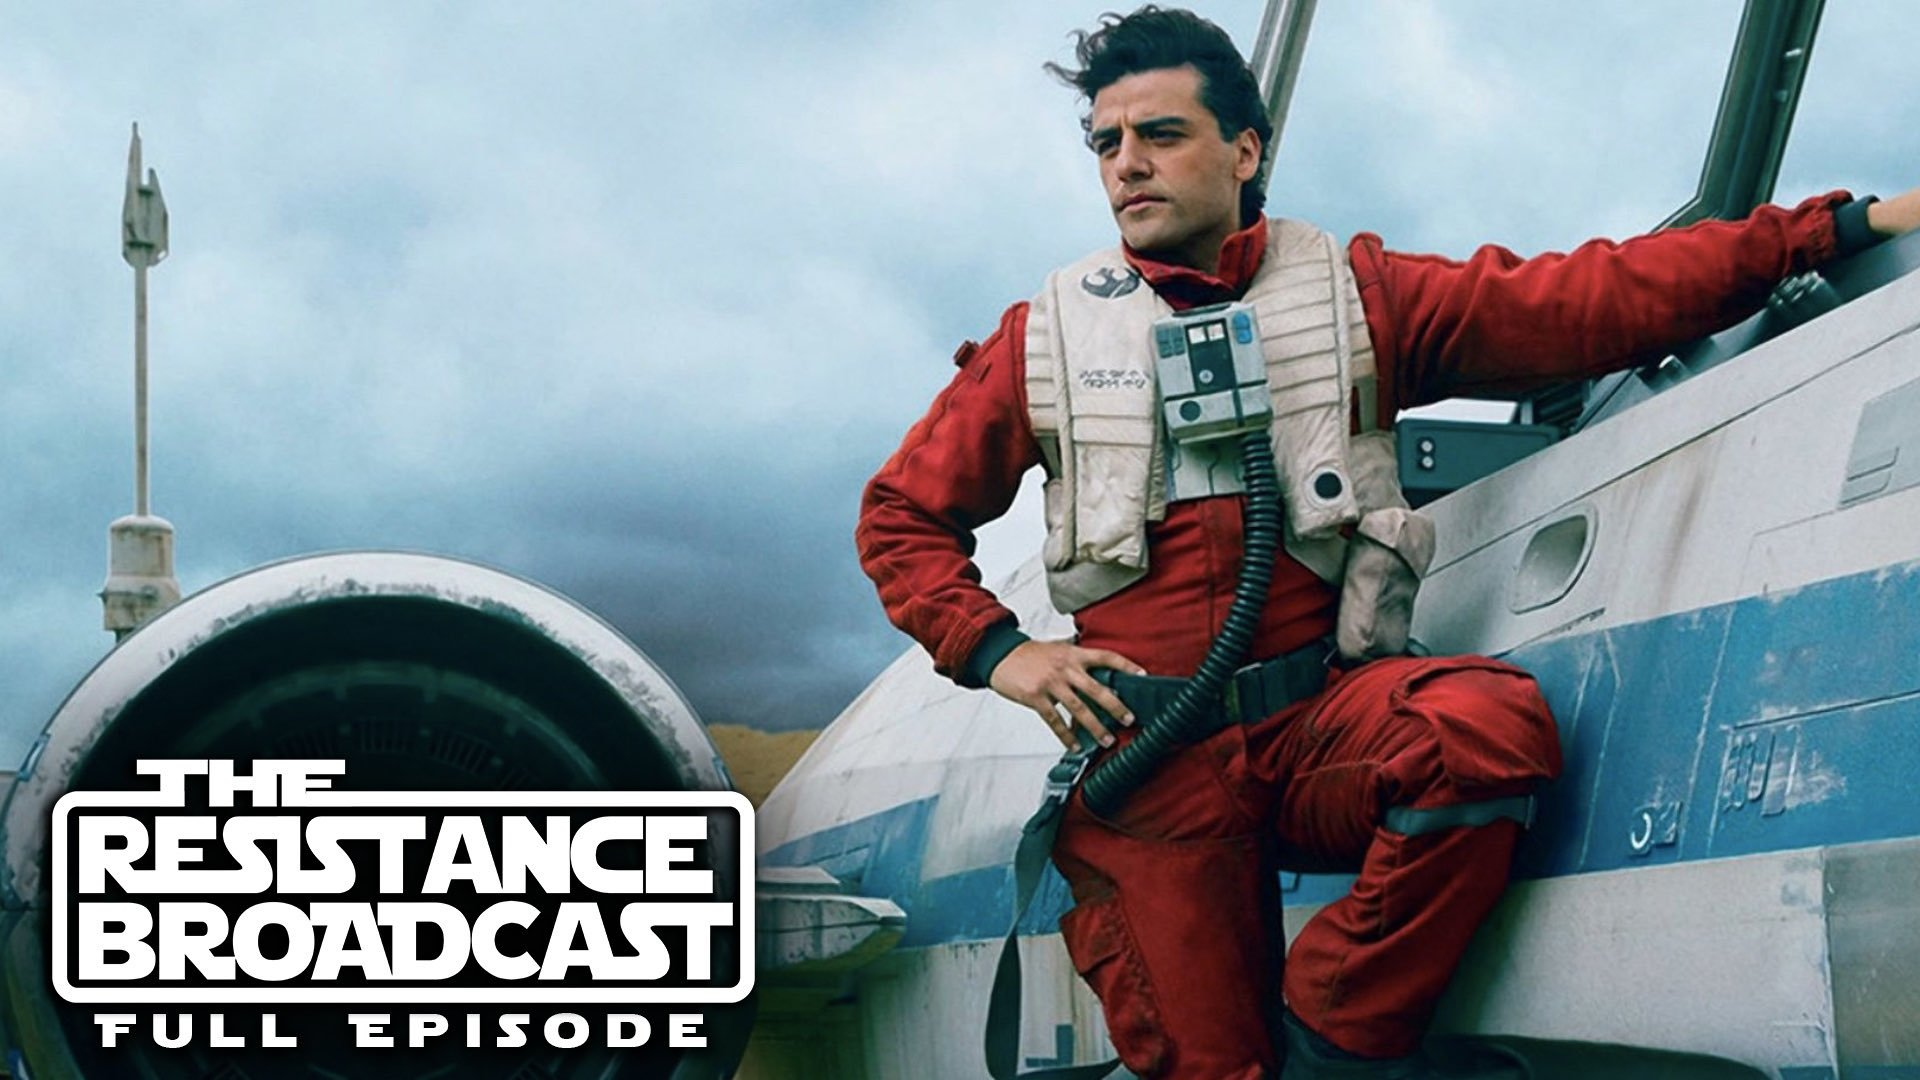 The Resistance Broadcast Poe Dameron Pilot Leader Difficult Man Star Wars News Net